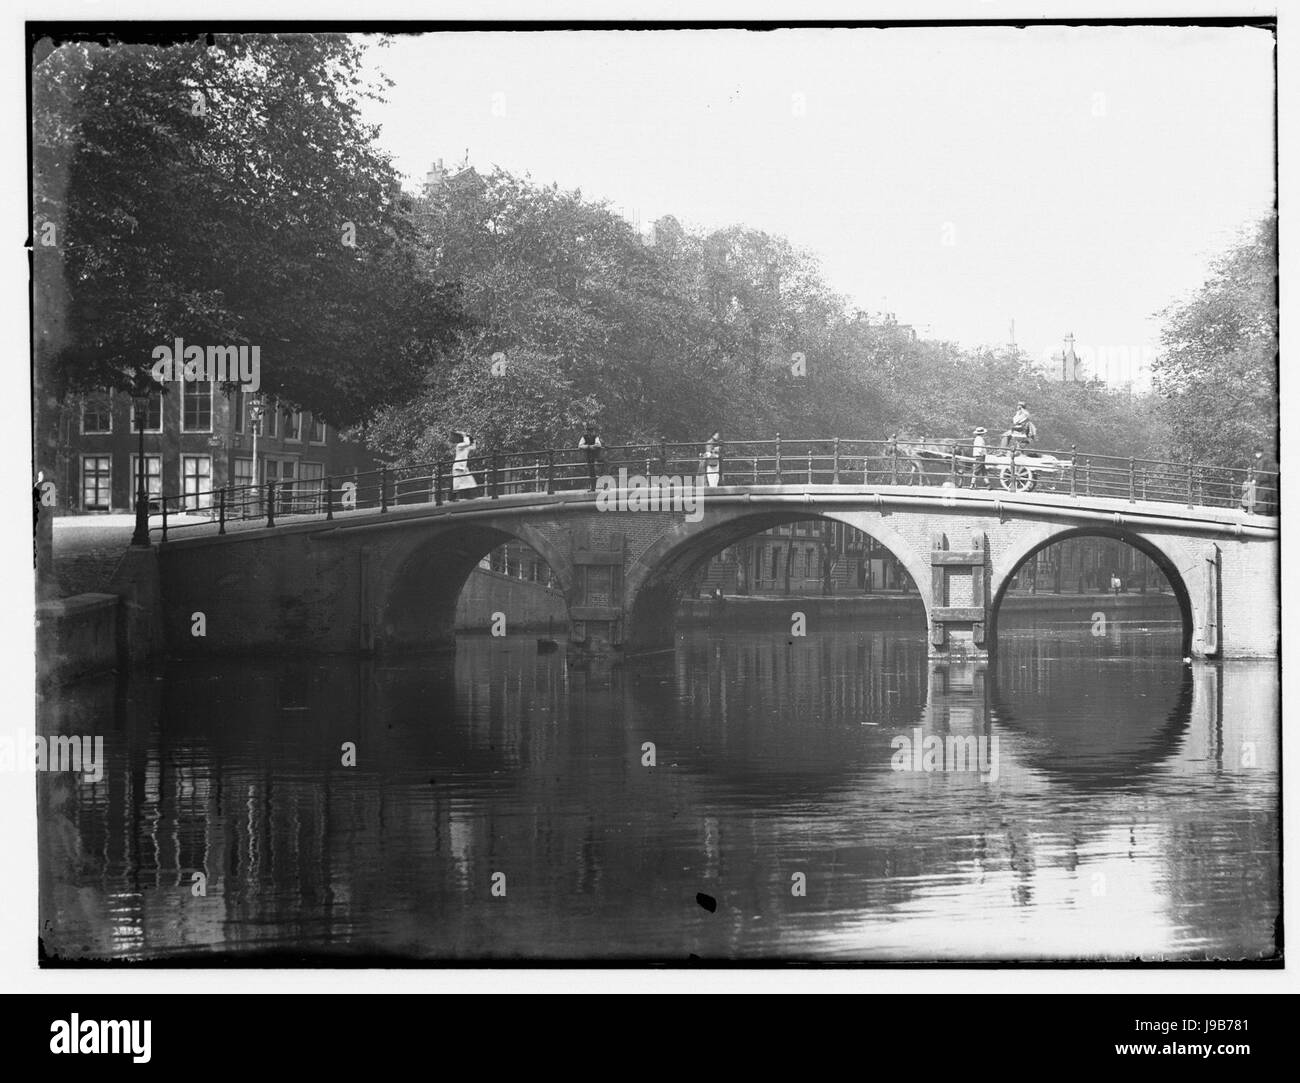 Prinsengracht 748 (links) Jacob Olie (max res) - Stock Image